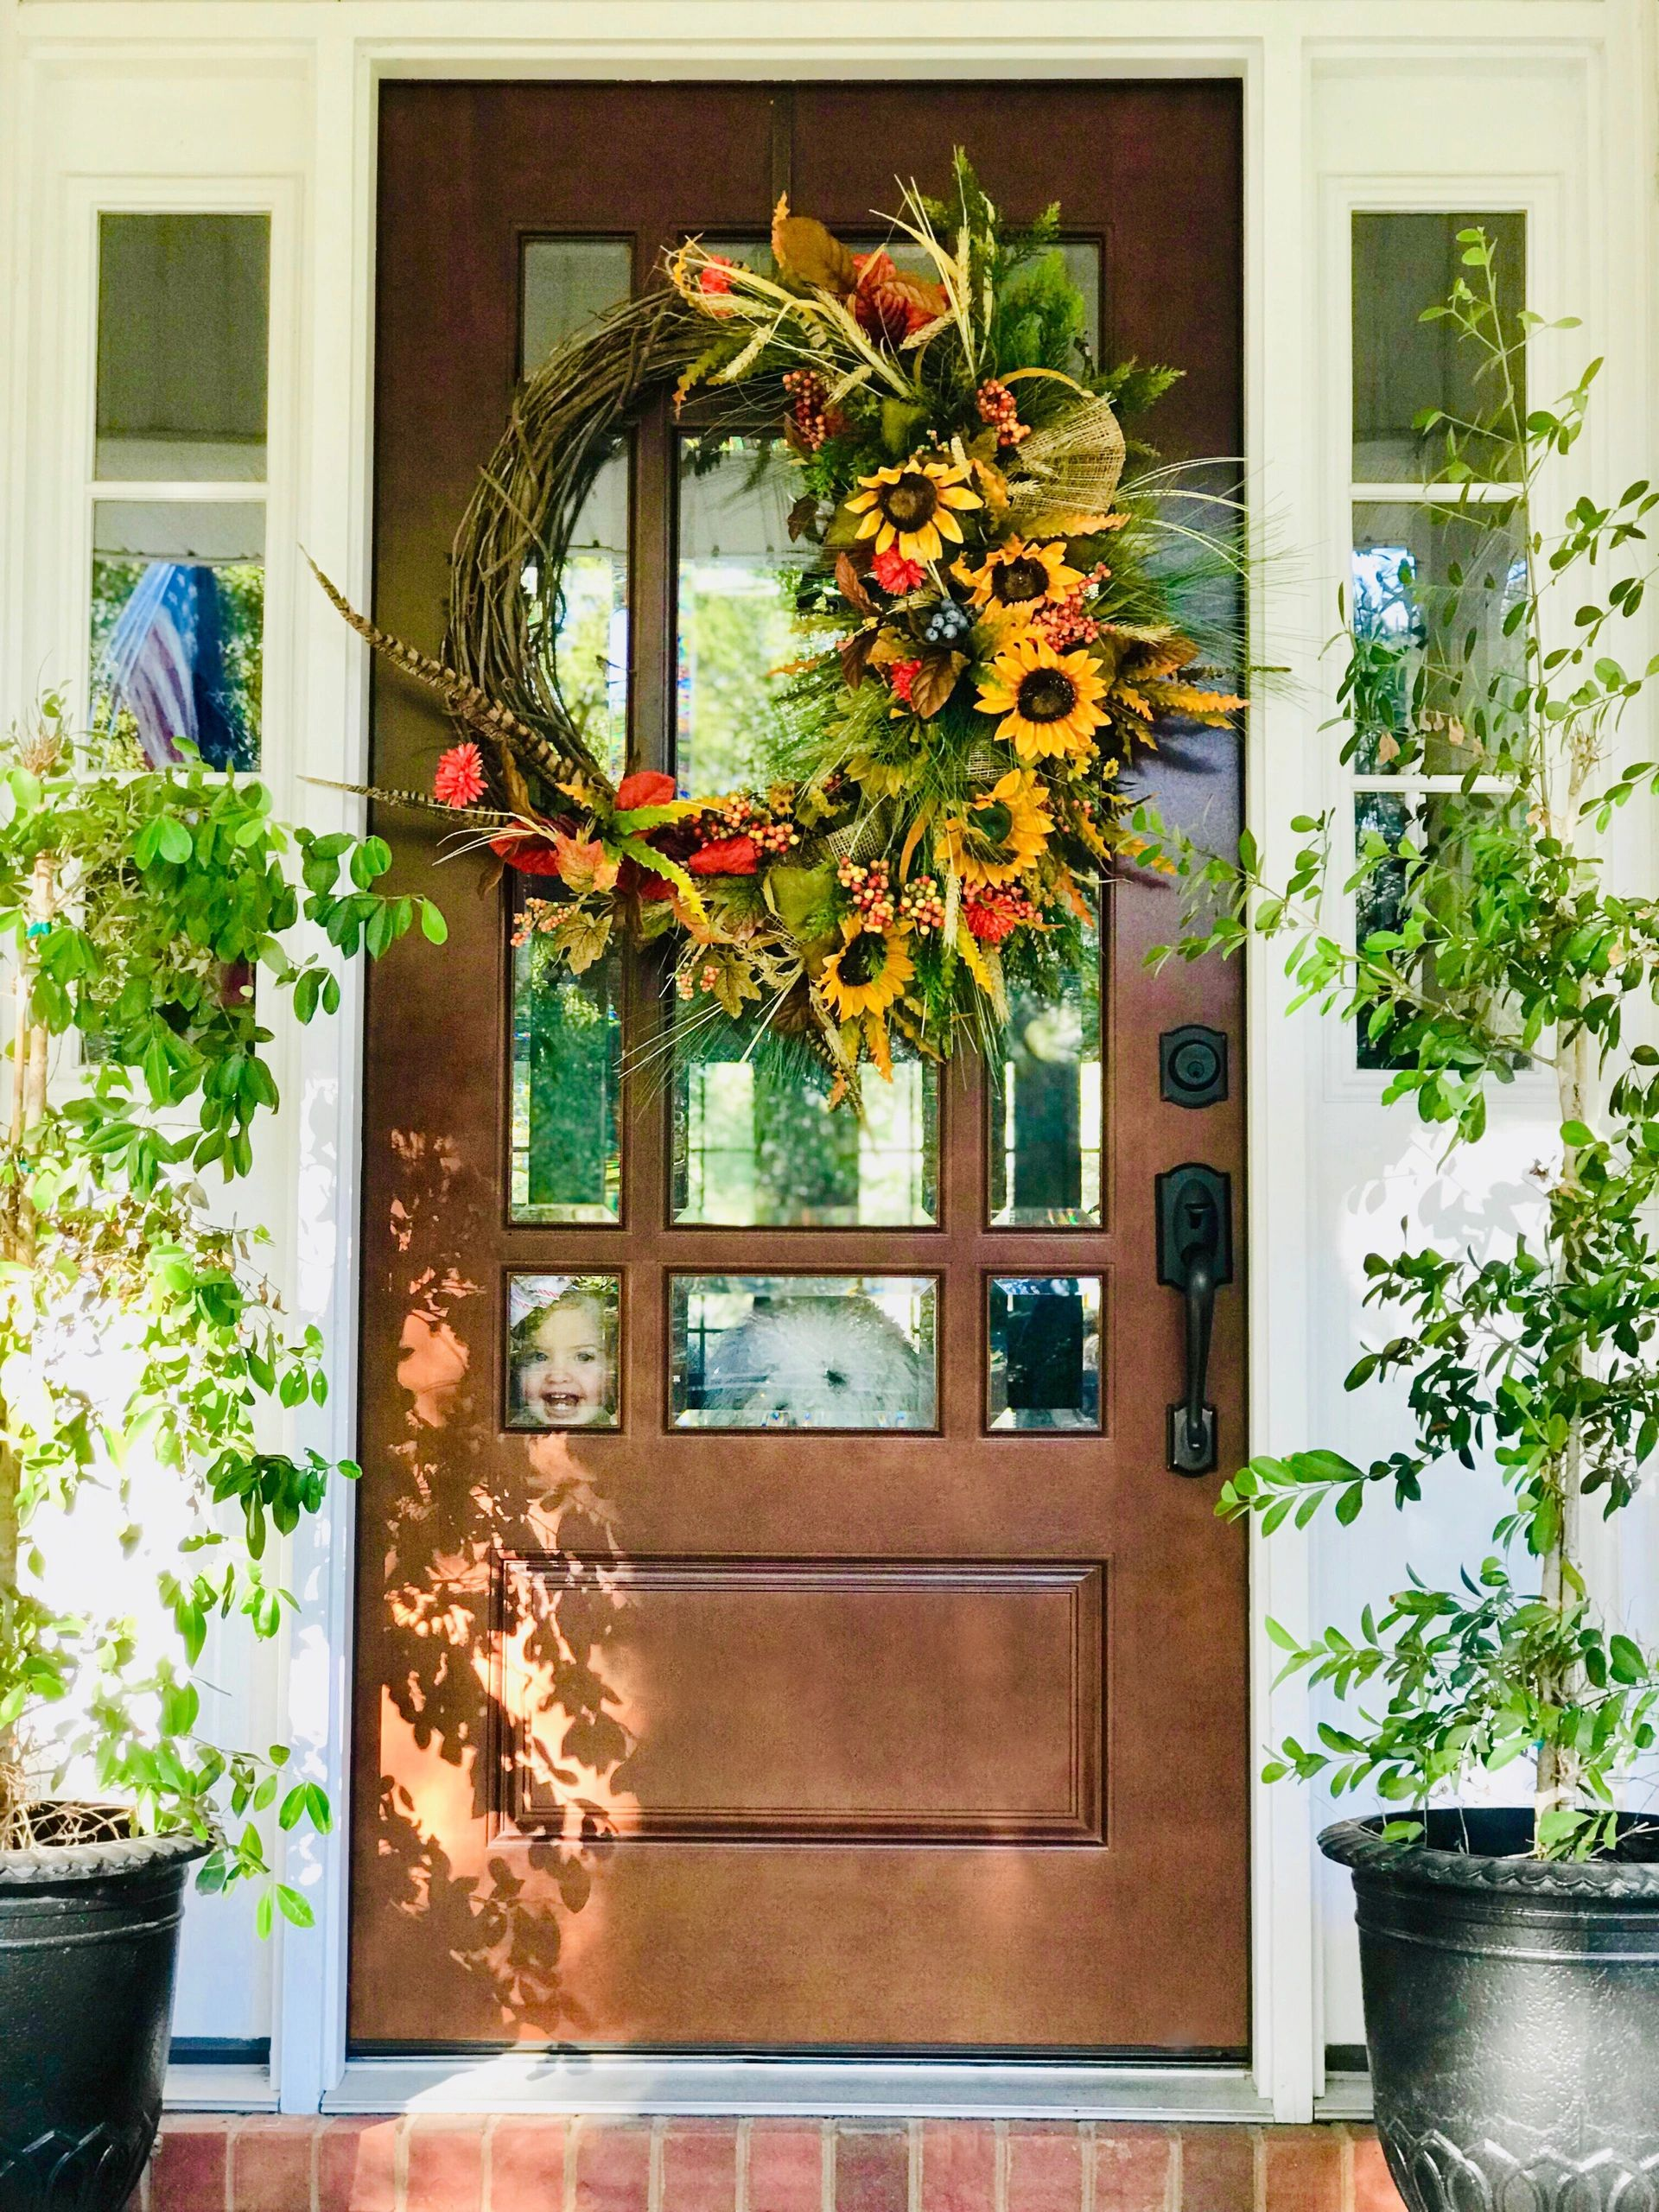 A front door that leads to my dream home.